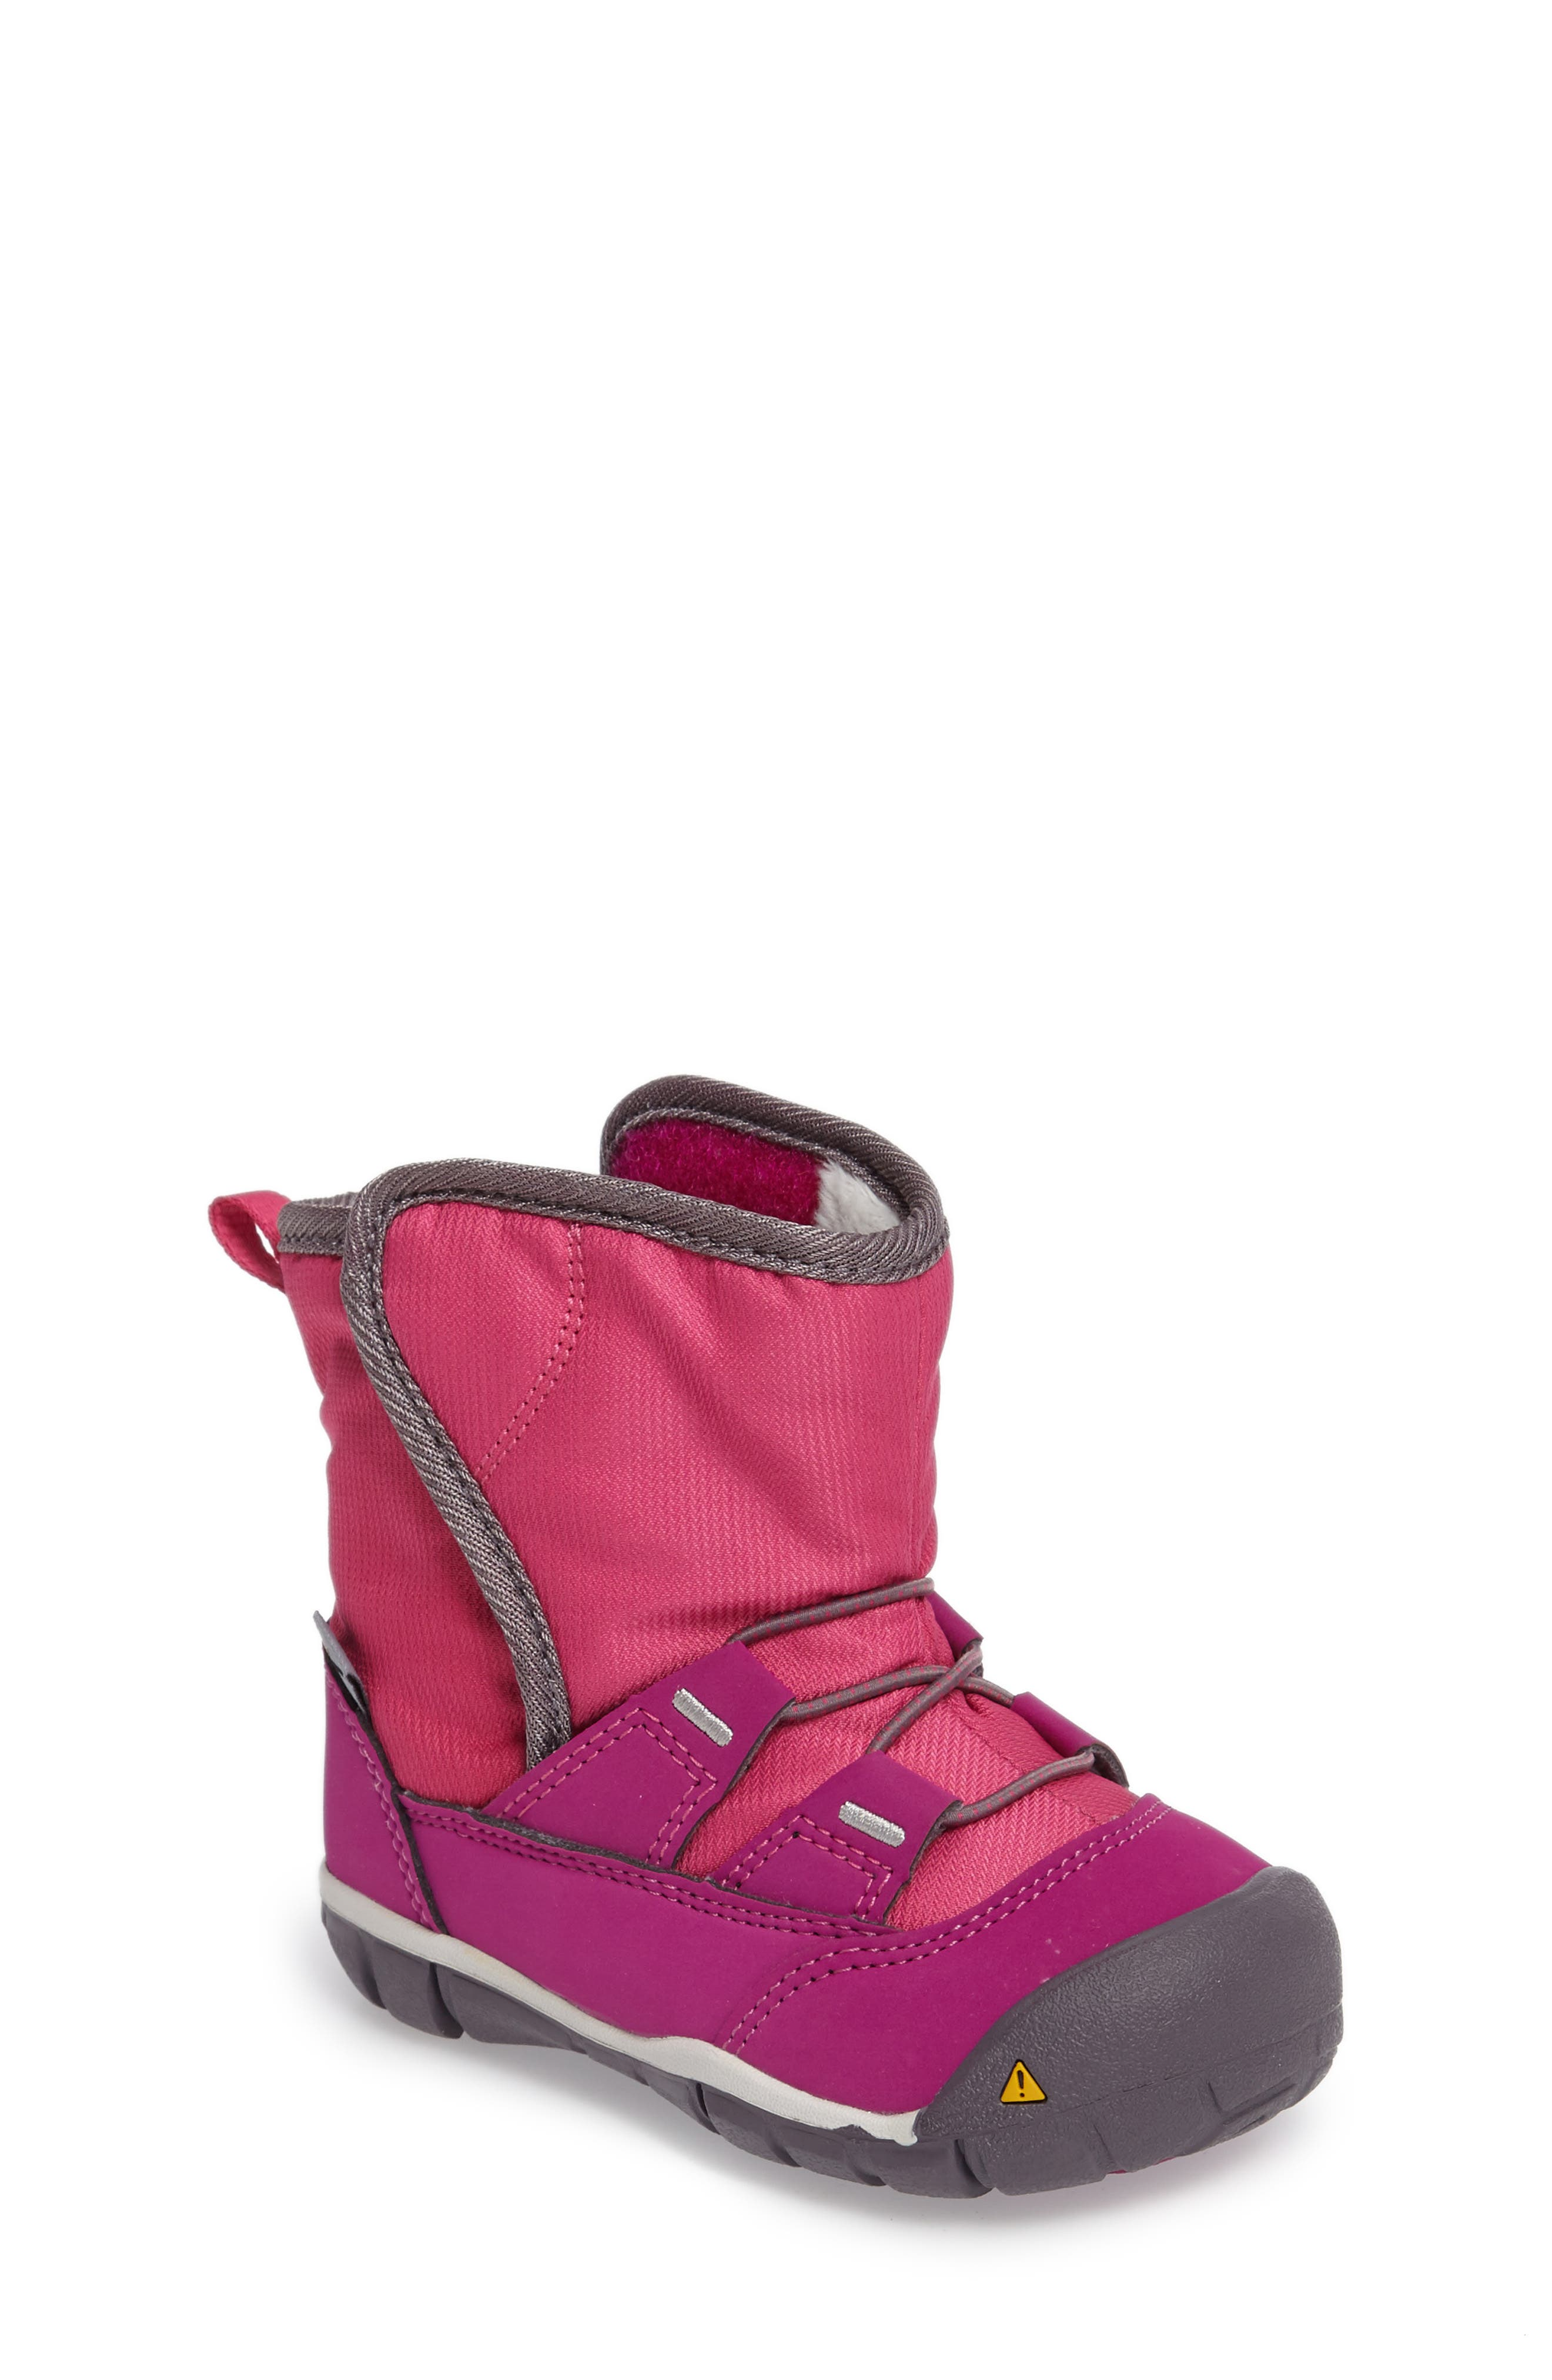 Peek-A-Boot Fleece Lined Boot,                             Alternate thumbnail 6, color,